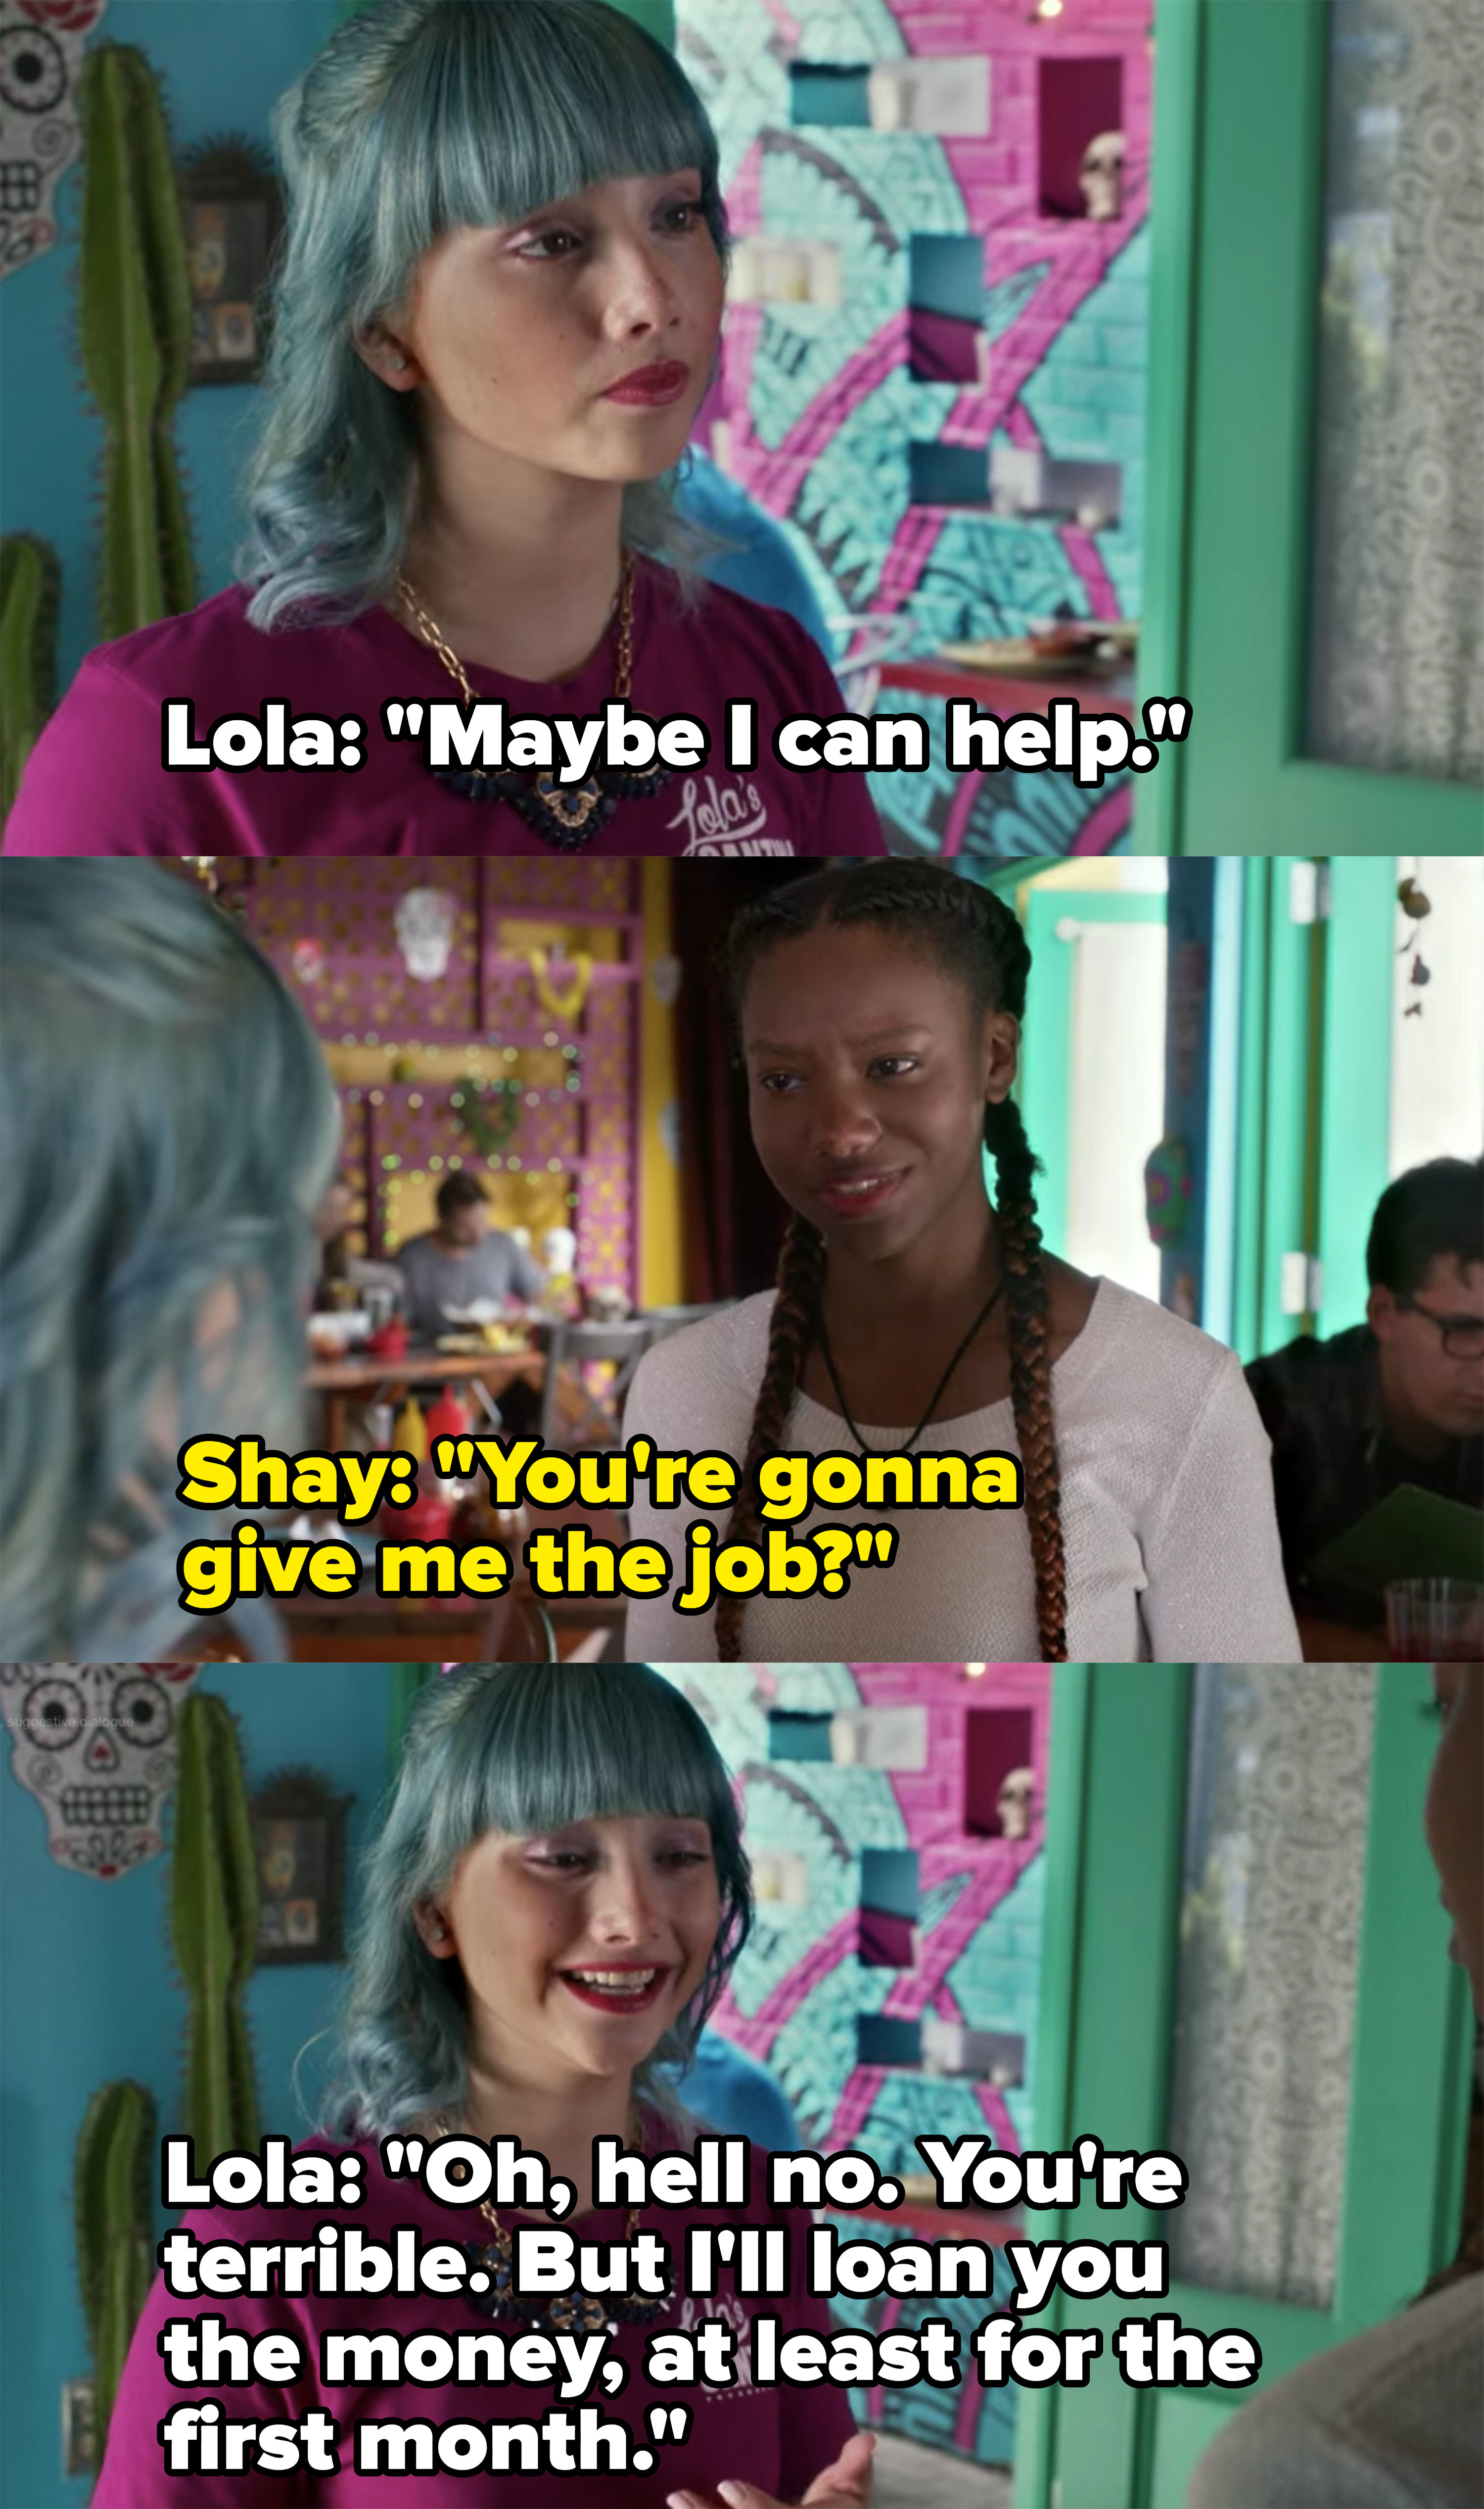 Lola says she won't give Shay the waitress job because she's terrible at it, but she'll loan her the money for the first month